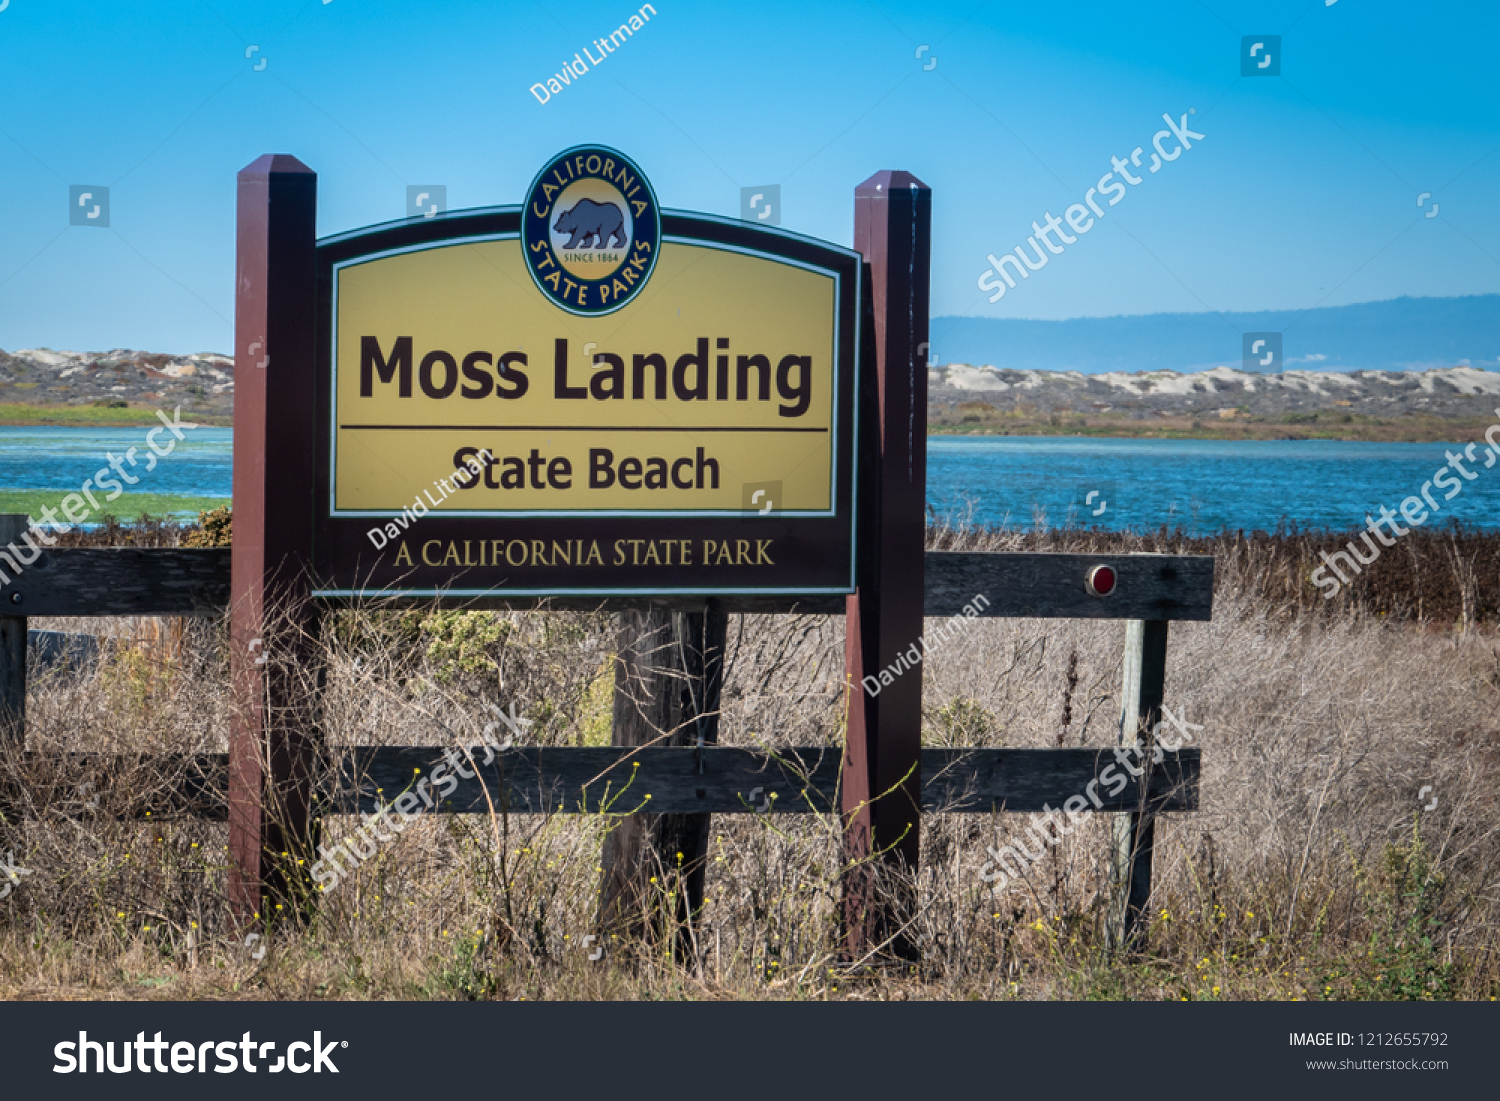 Monterey, California - October 16, 2018: Moss Landing State Beach is located along the Monterey Bay in central California.